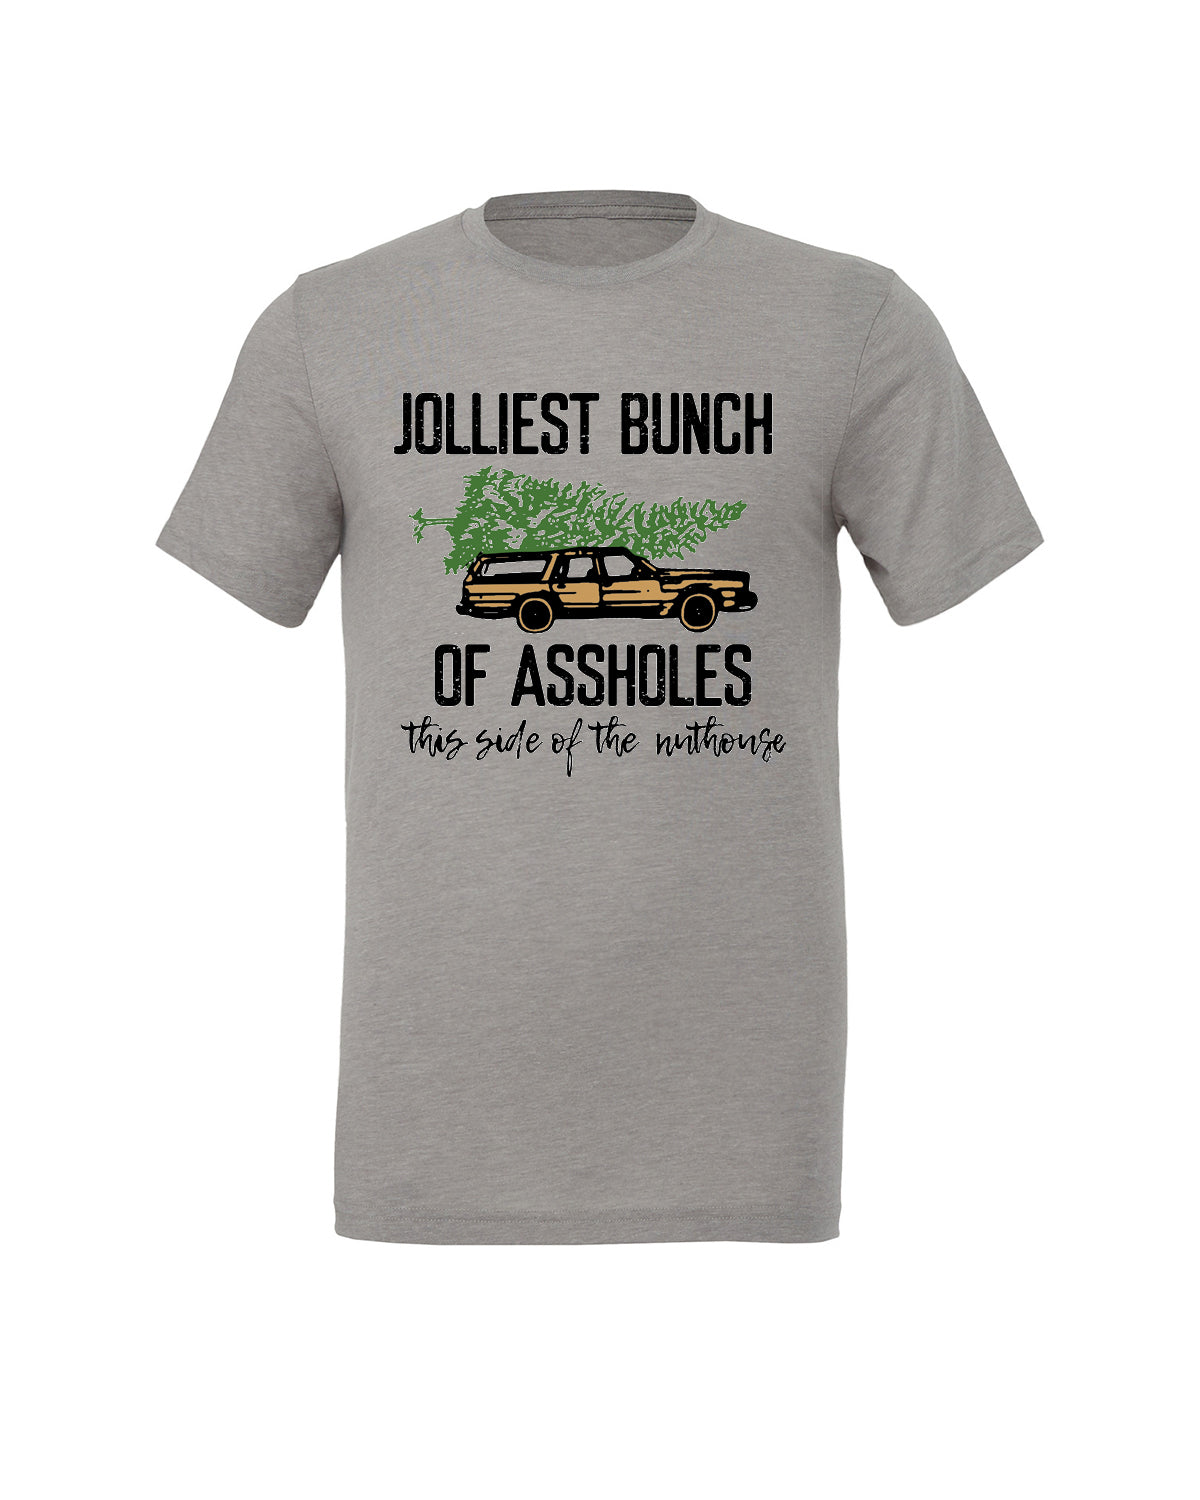 Jolliest Bunch of Assholes Tee.